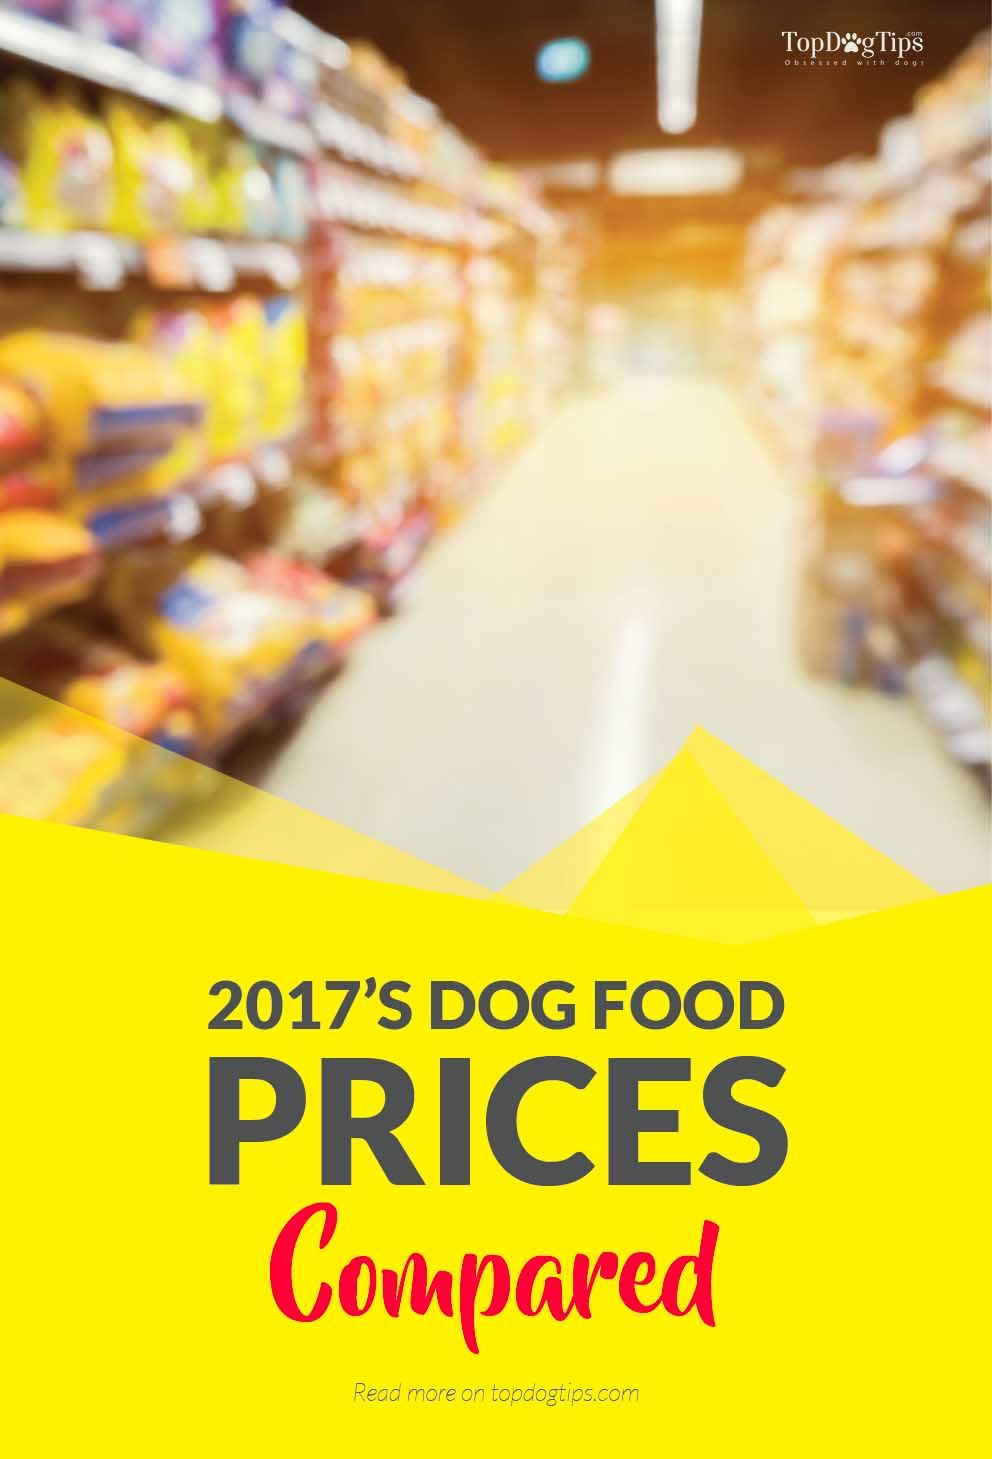 2018 Dog Food Prices 30 Top Dog Food Brands Price For Value